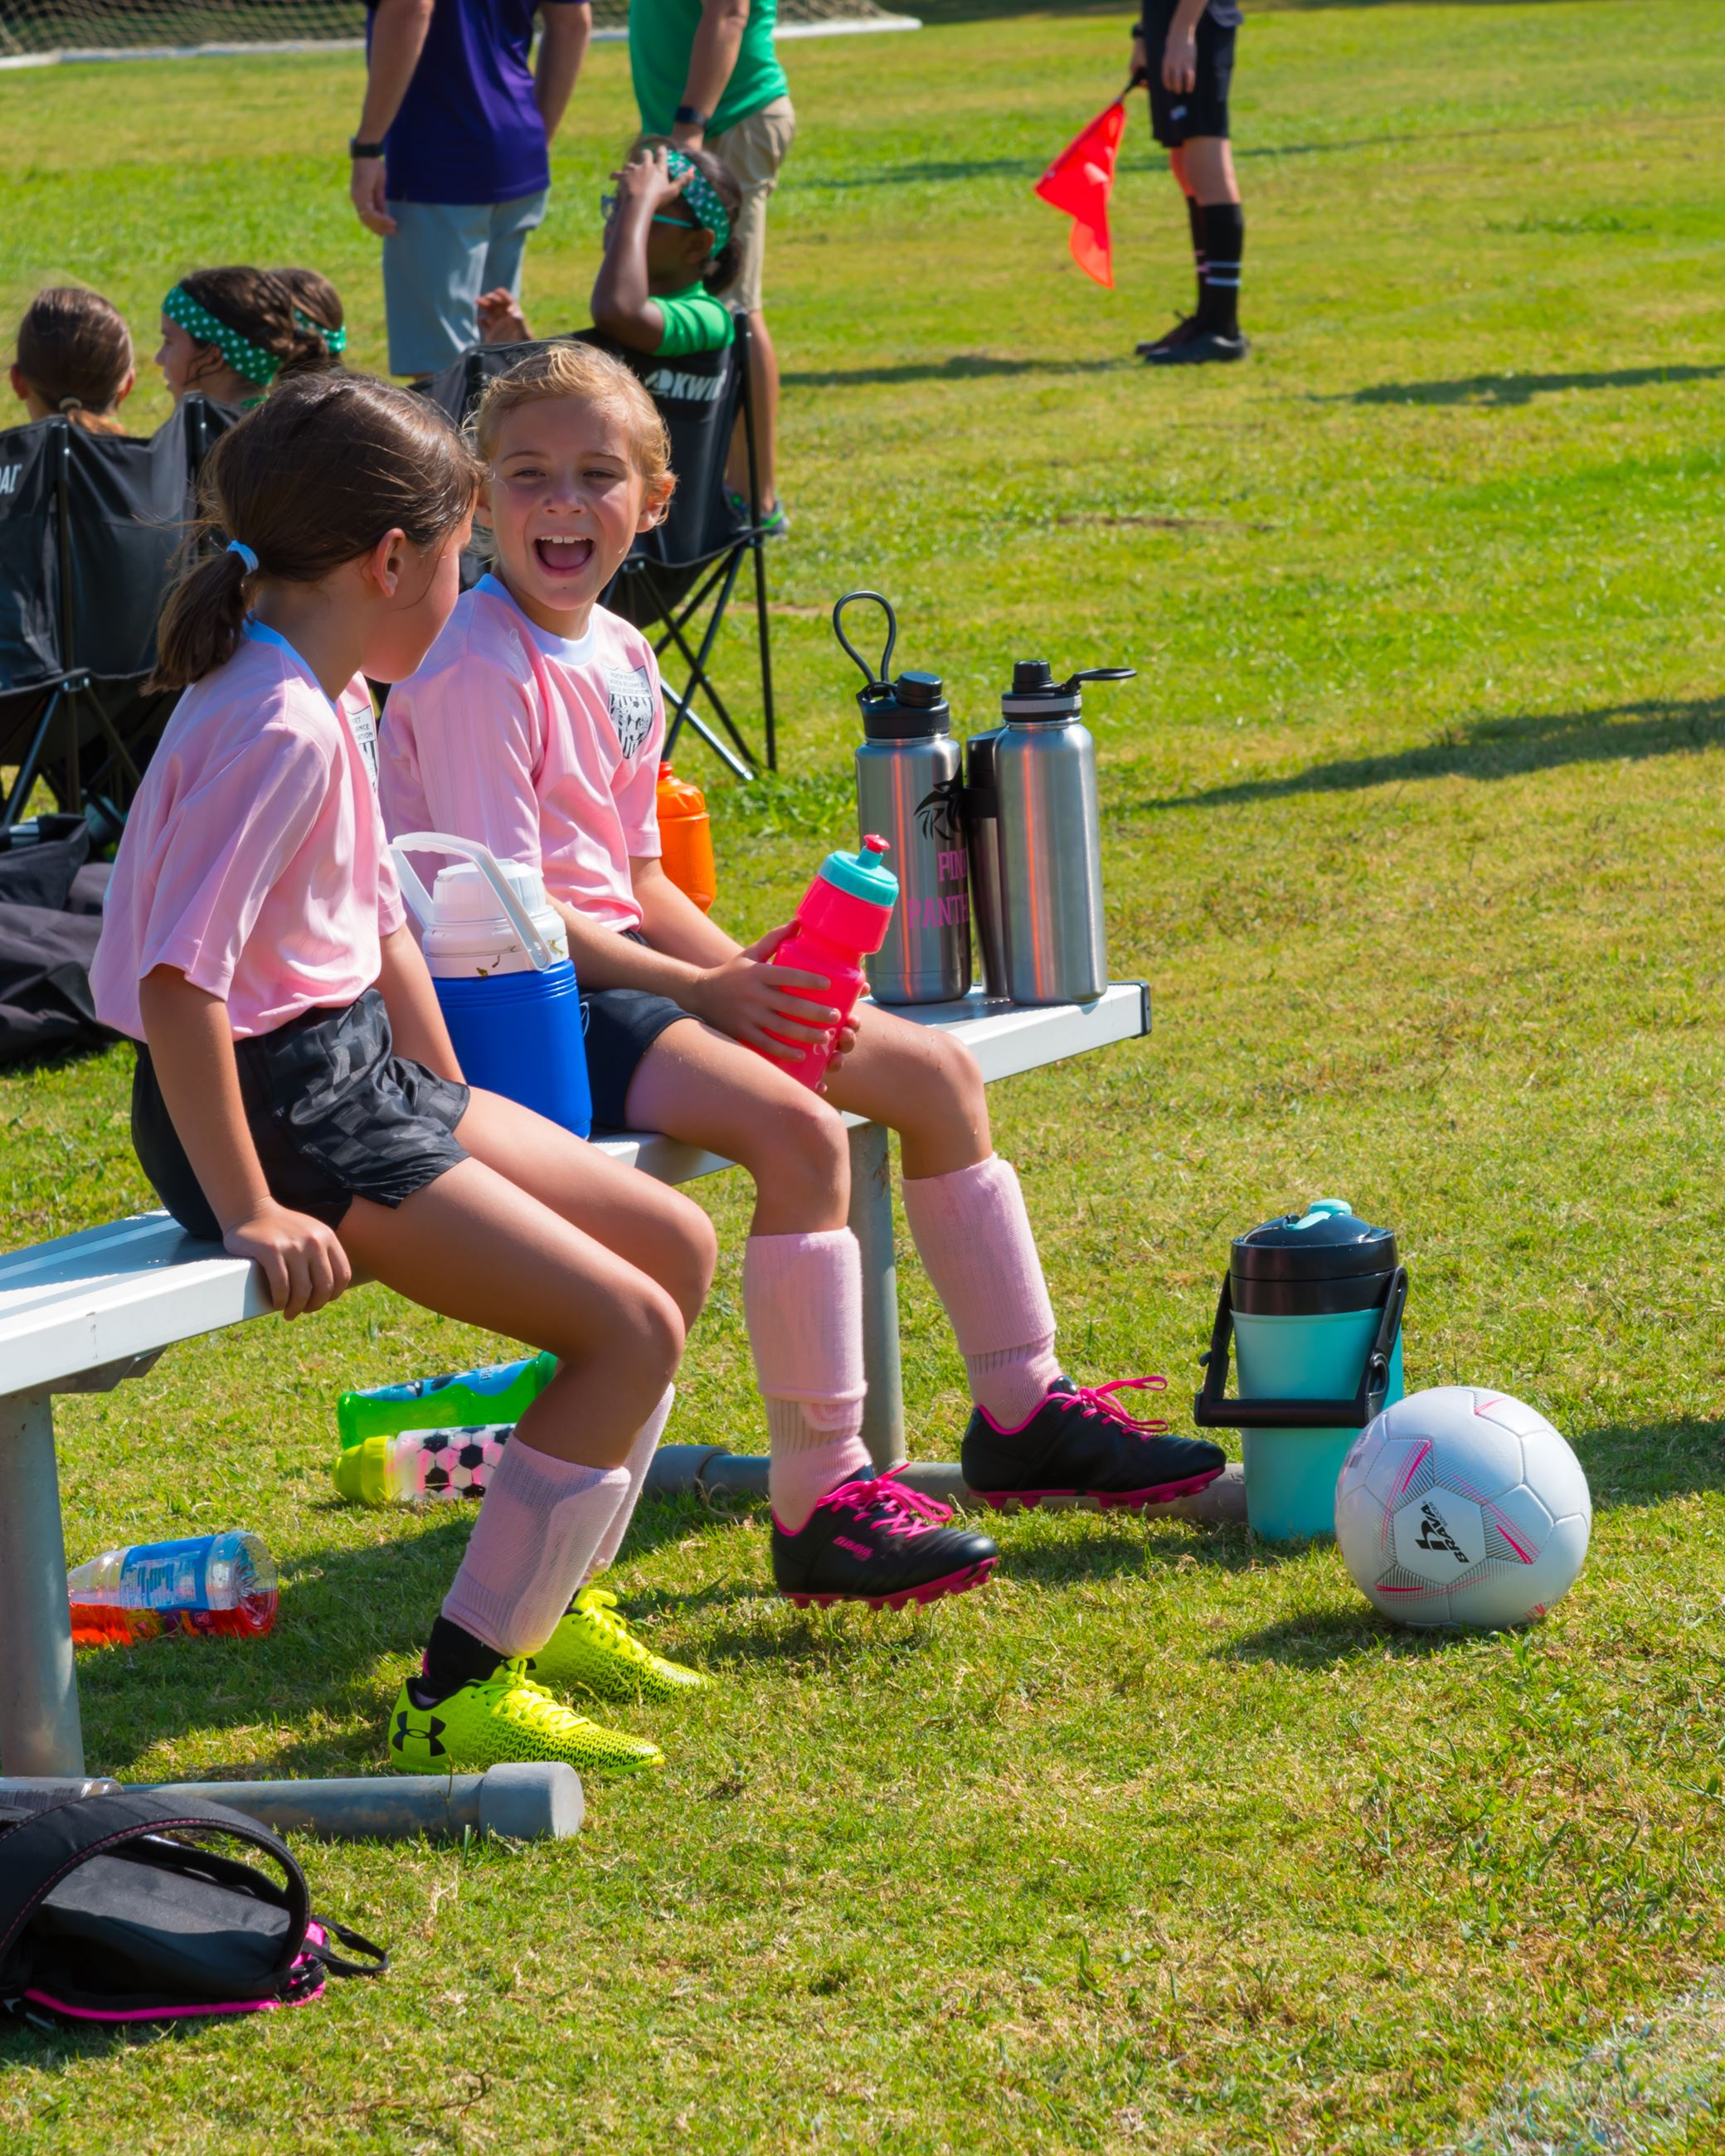 Two Girls Sitting on a Soccer Bench